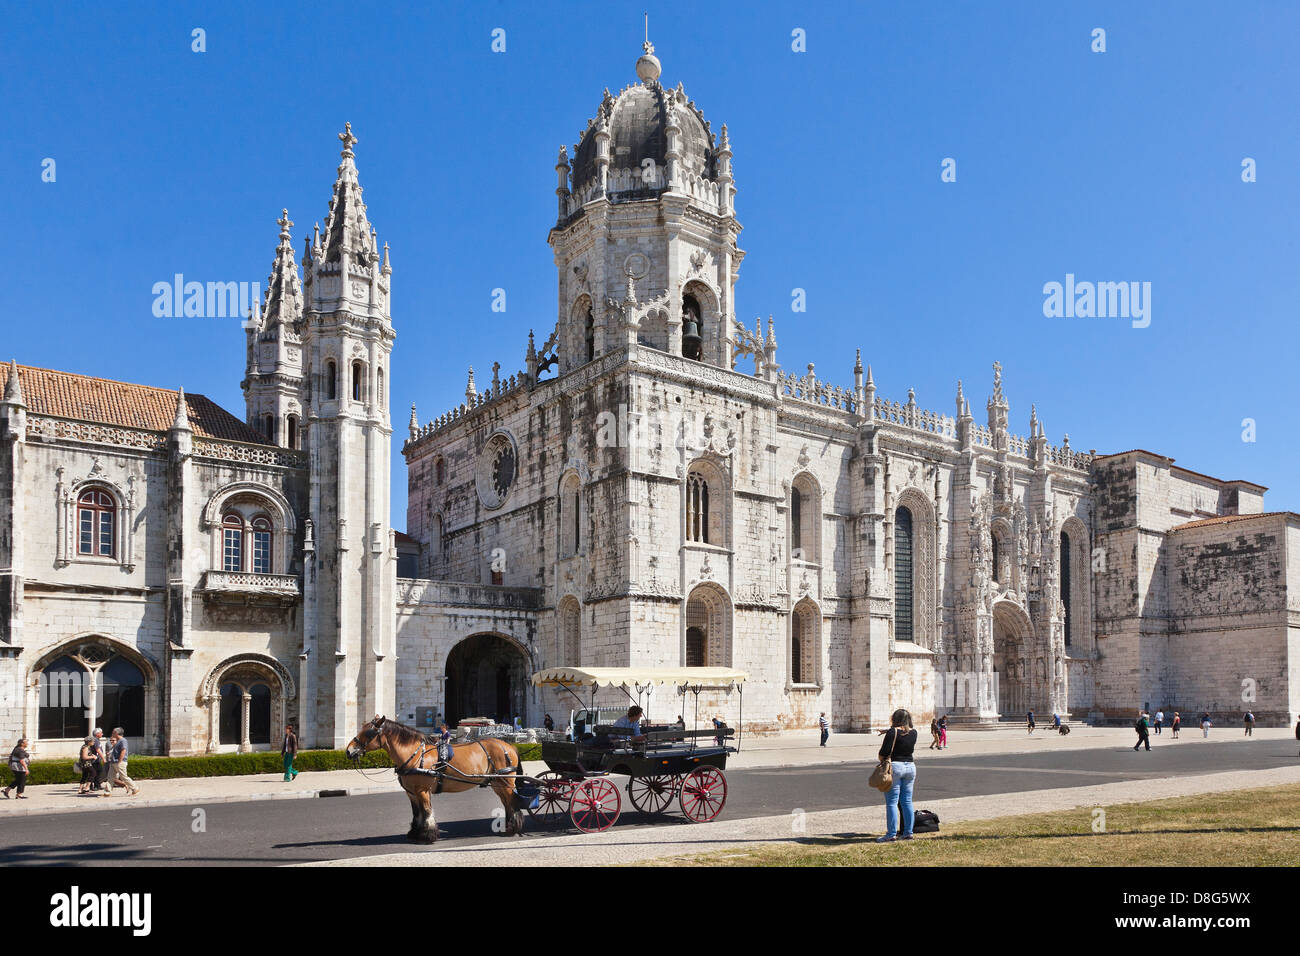 Lisbon museum of archaeology; The National Archaeology Museum of Lisbon, Portugal. Front facade with a tourist horse - Stock Image